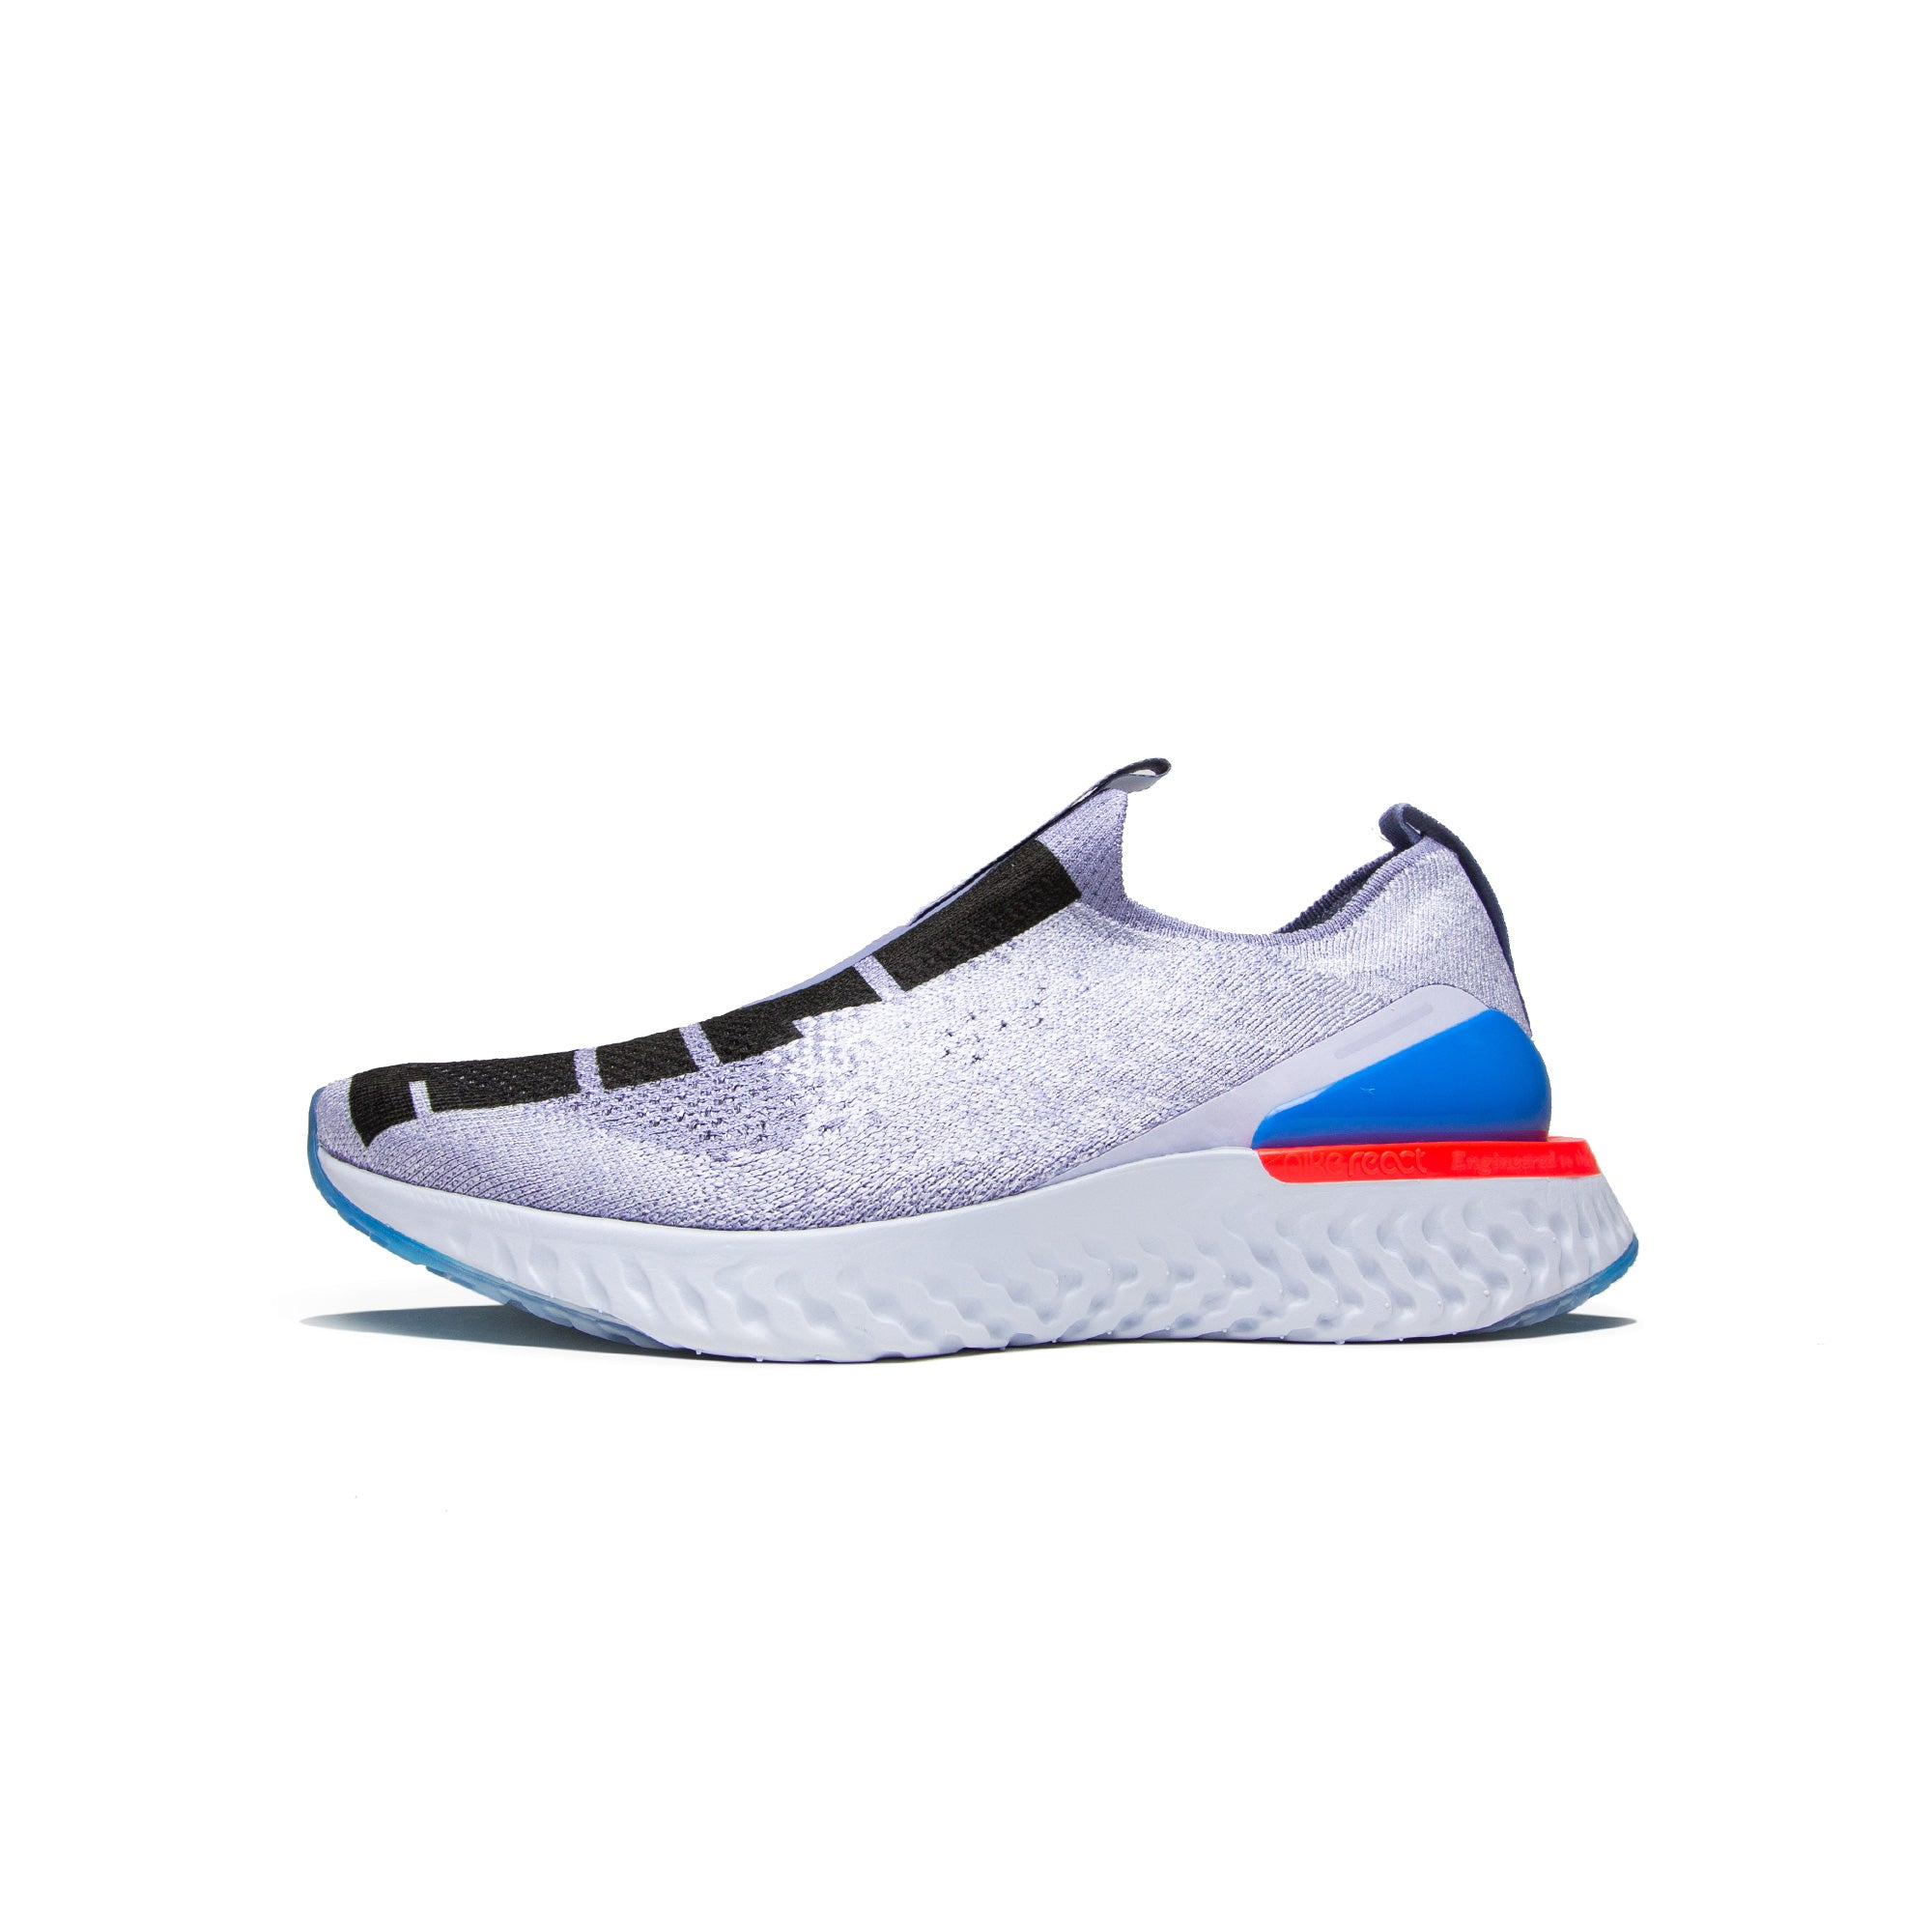 Nike Epic Phantom React Flyknit JDI [CI1291-400]